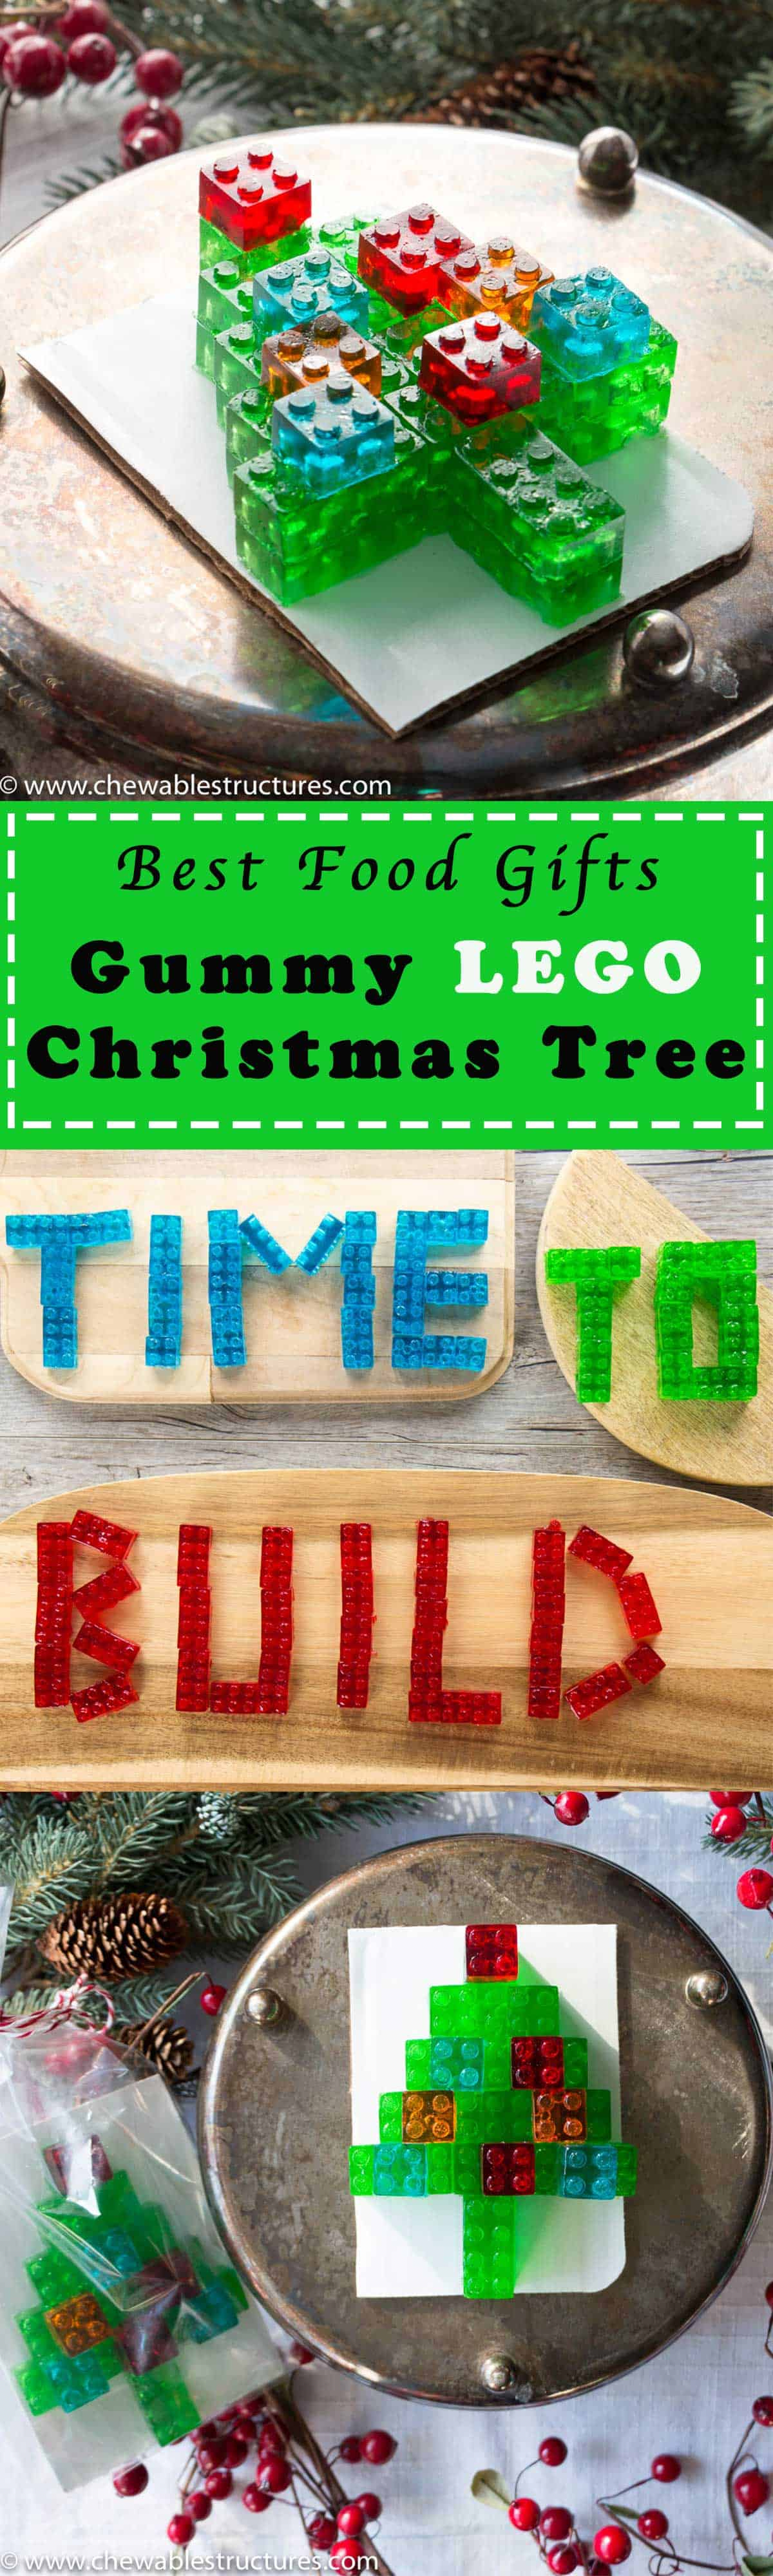 This gummy LEGO candy Christmas tree is one of the best food gifts, ever. Watch my video to see how to make gummy candy.